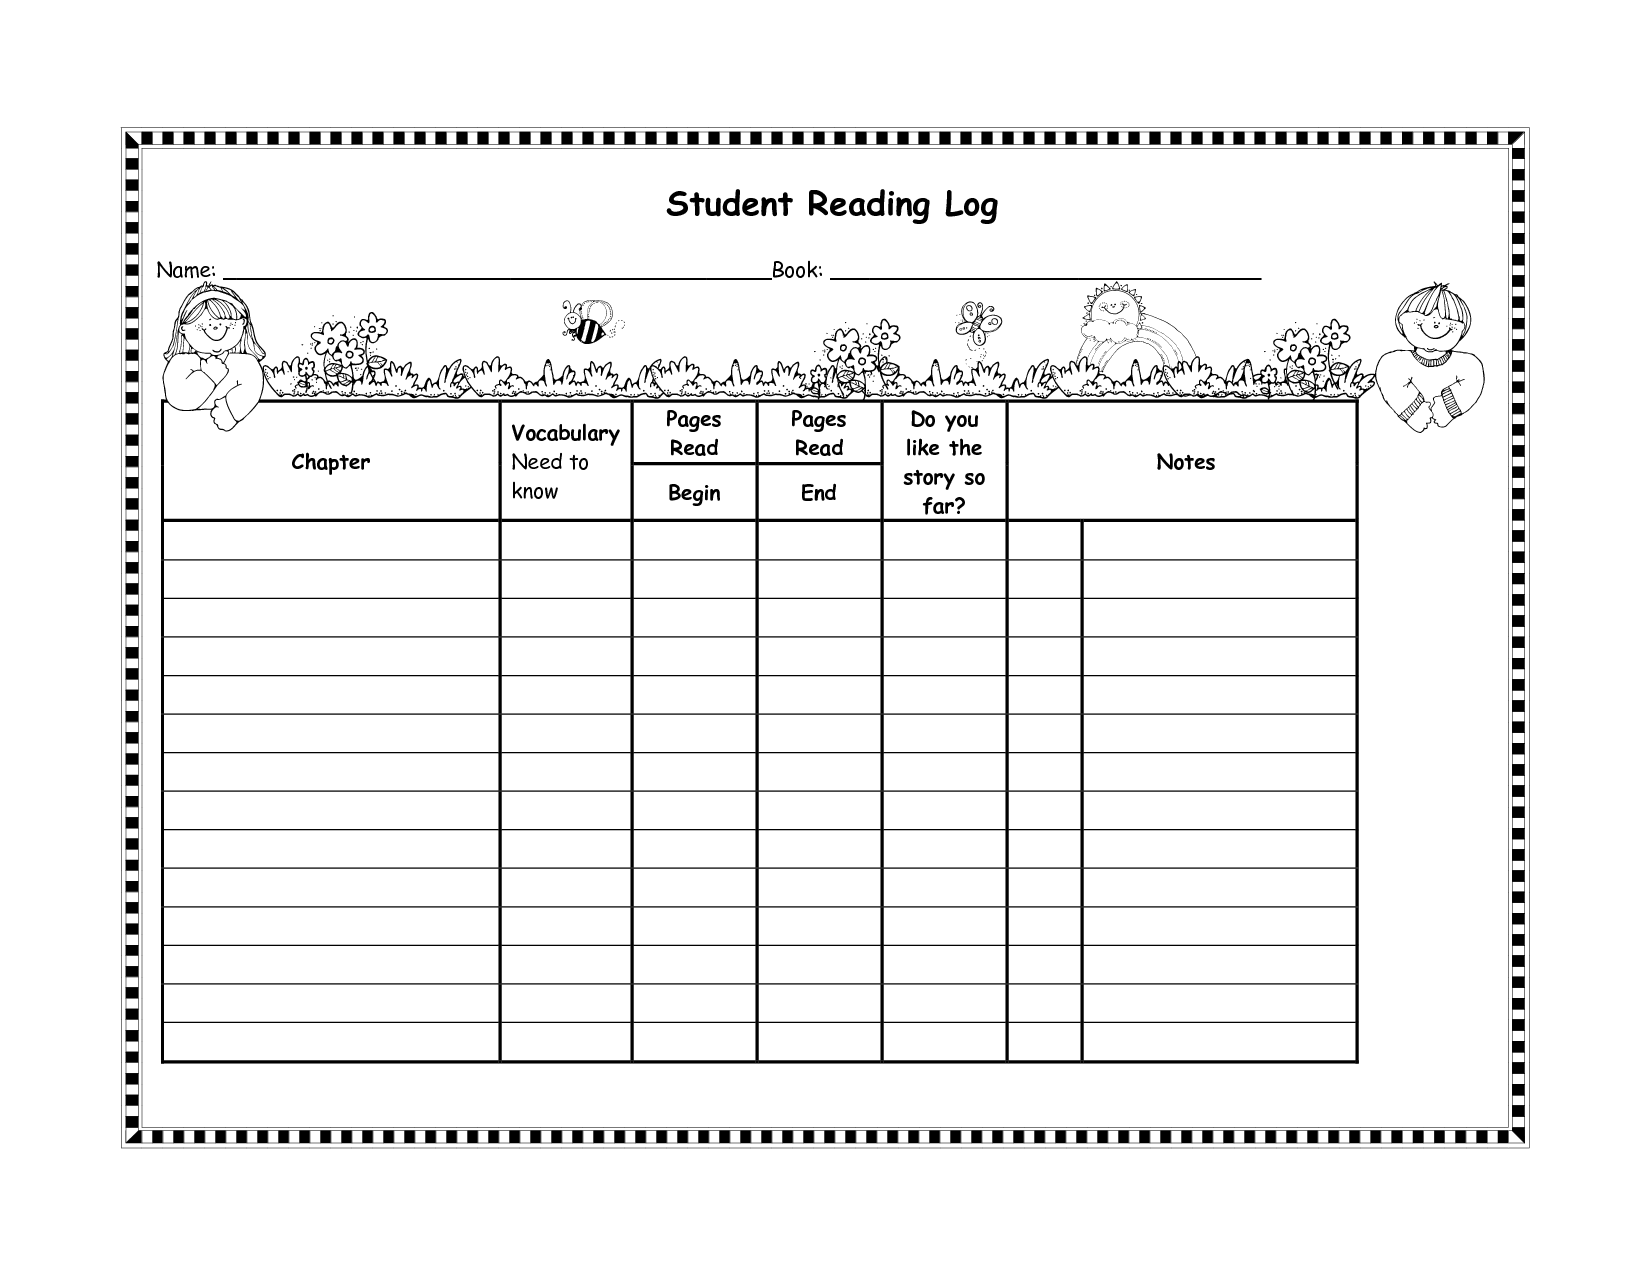 Student Reading Log Template